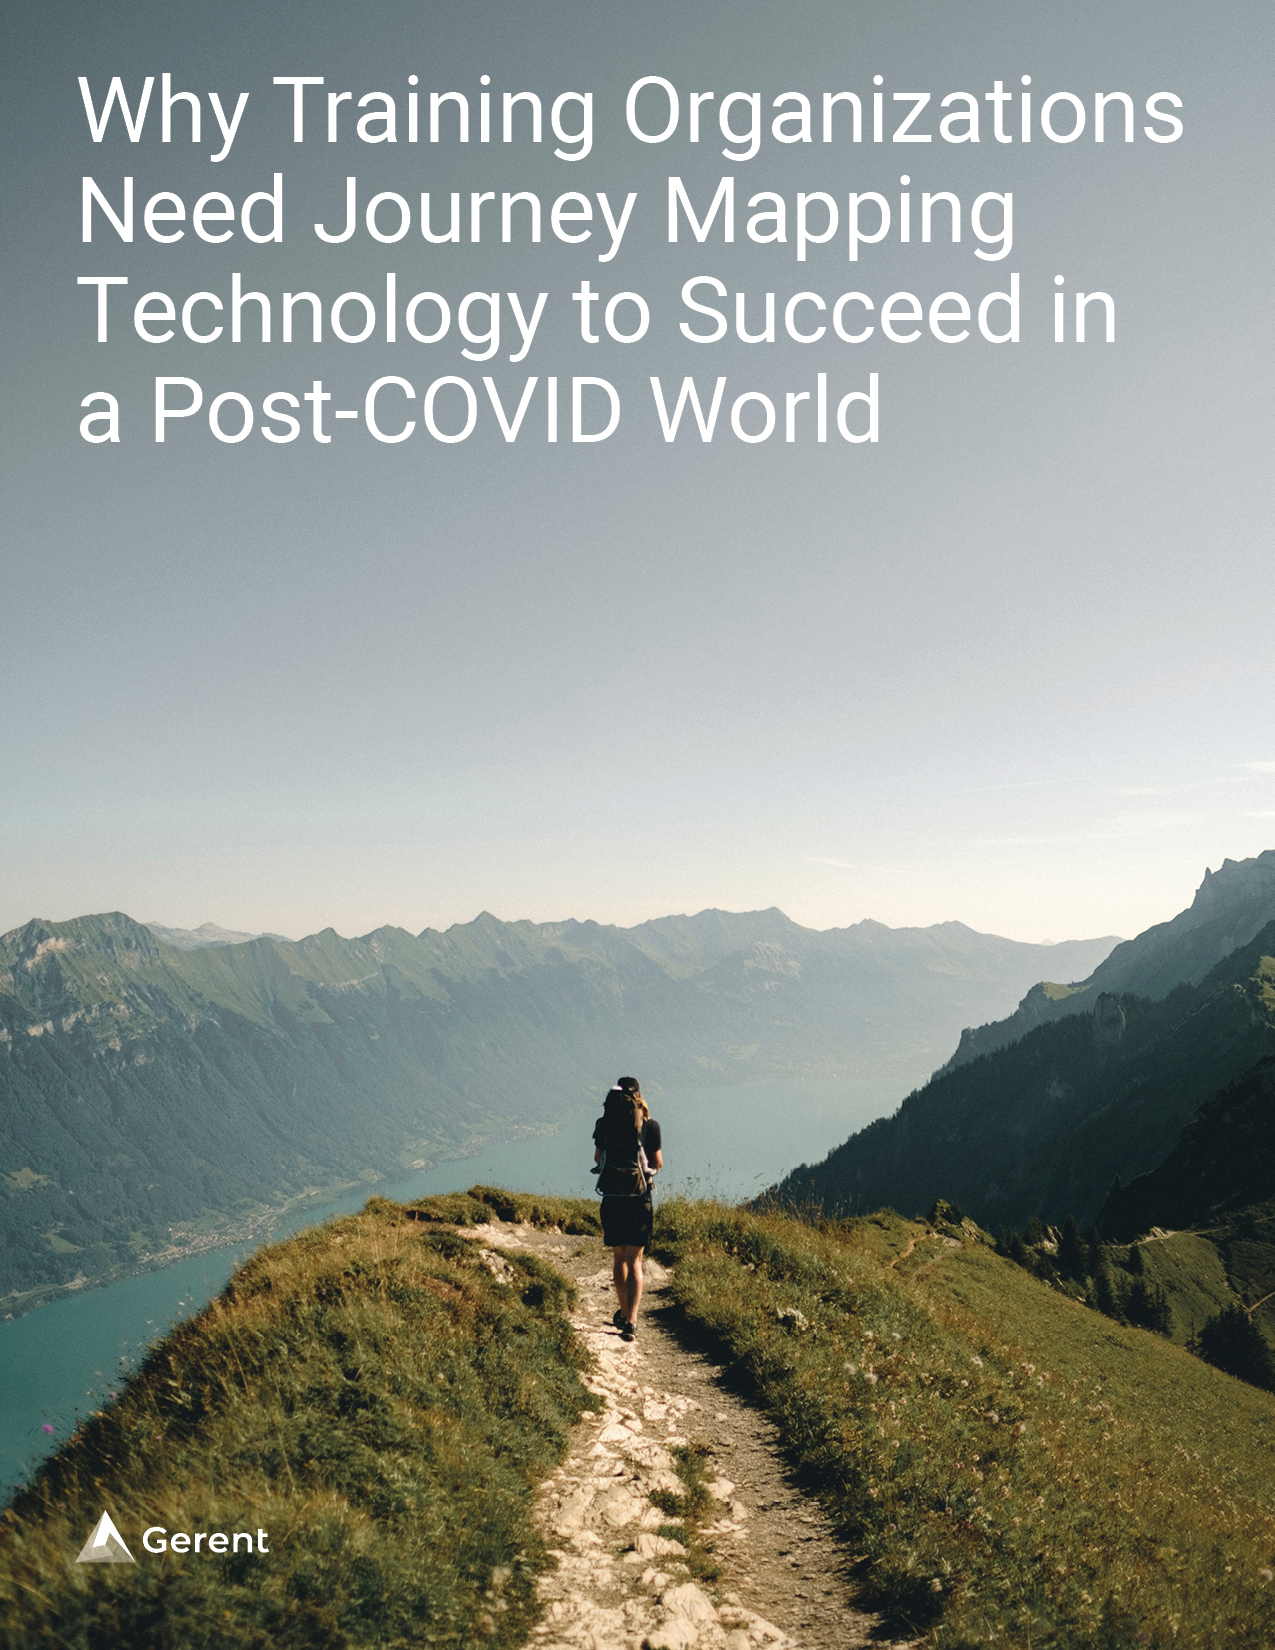 Why Training Organizations Need Journey Mapping Technology to Succeed in a Post-COVID World